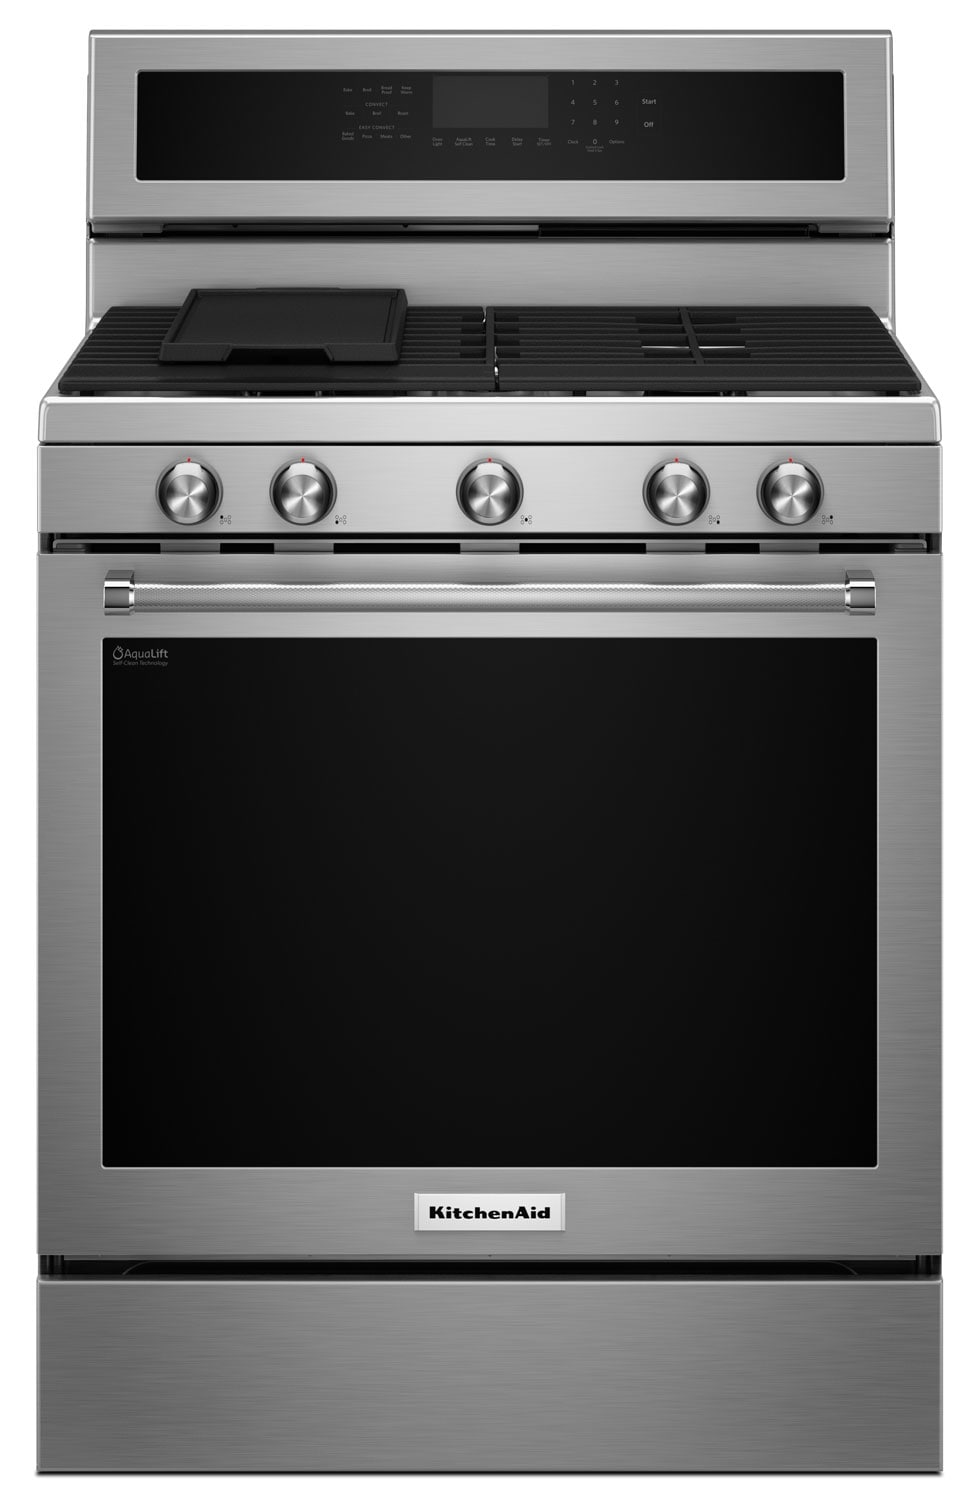 Cooking Products - KitchenAid 5.8 Cu. Ft. Five-Burner Gas Convection Range- Stainless Steel